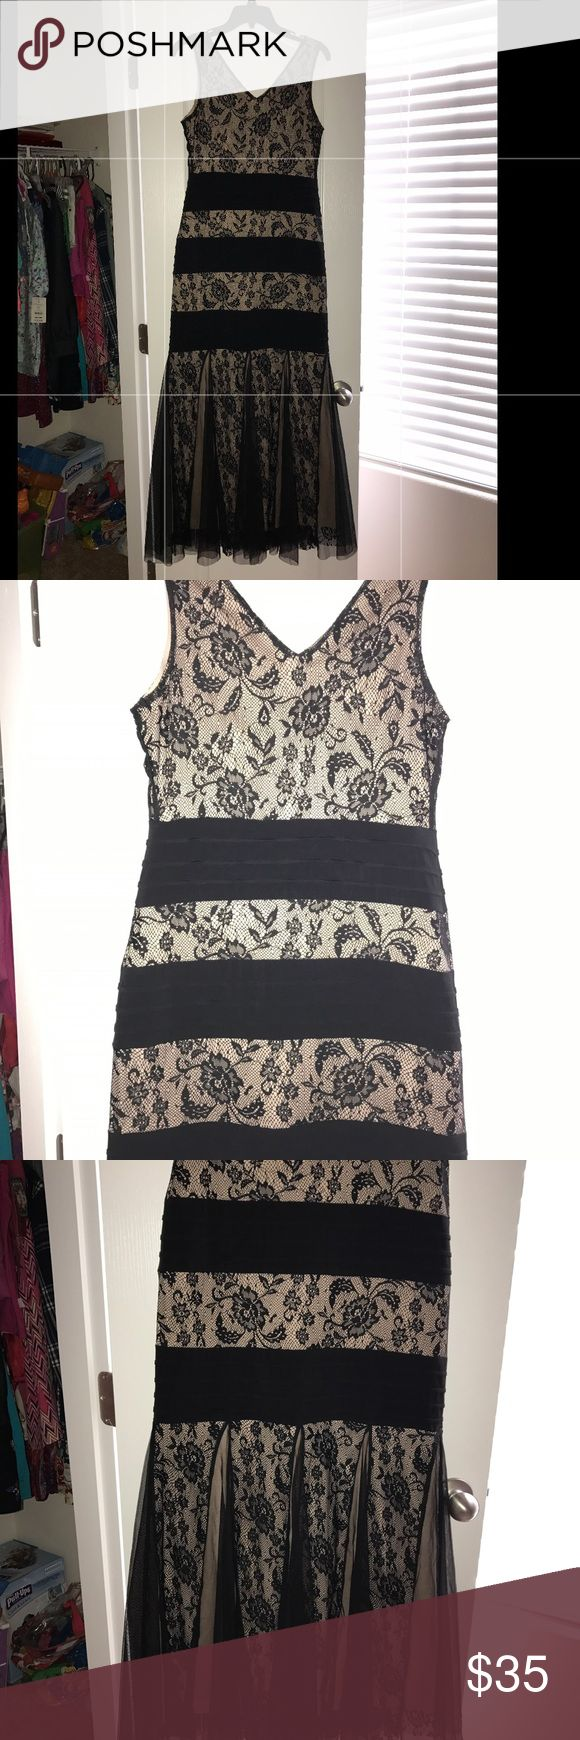 Beautiful dress Very nice nude with black lace sexy mermaid dress stretchy and fits like a glove size SP like new wore only one dry cleaned Dresses Maxi